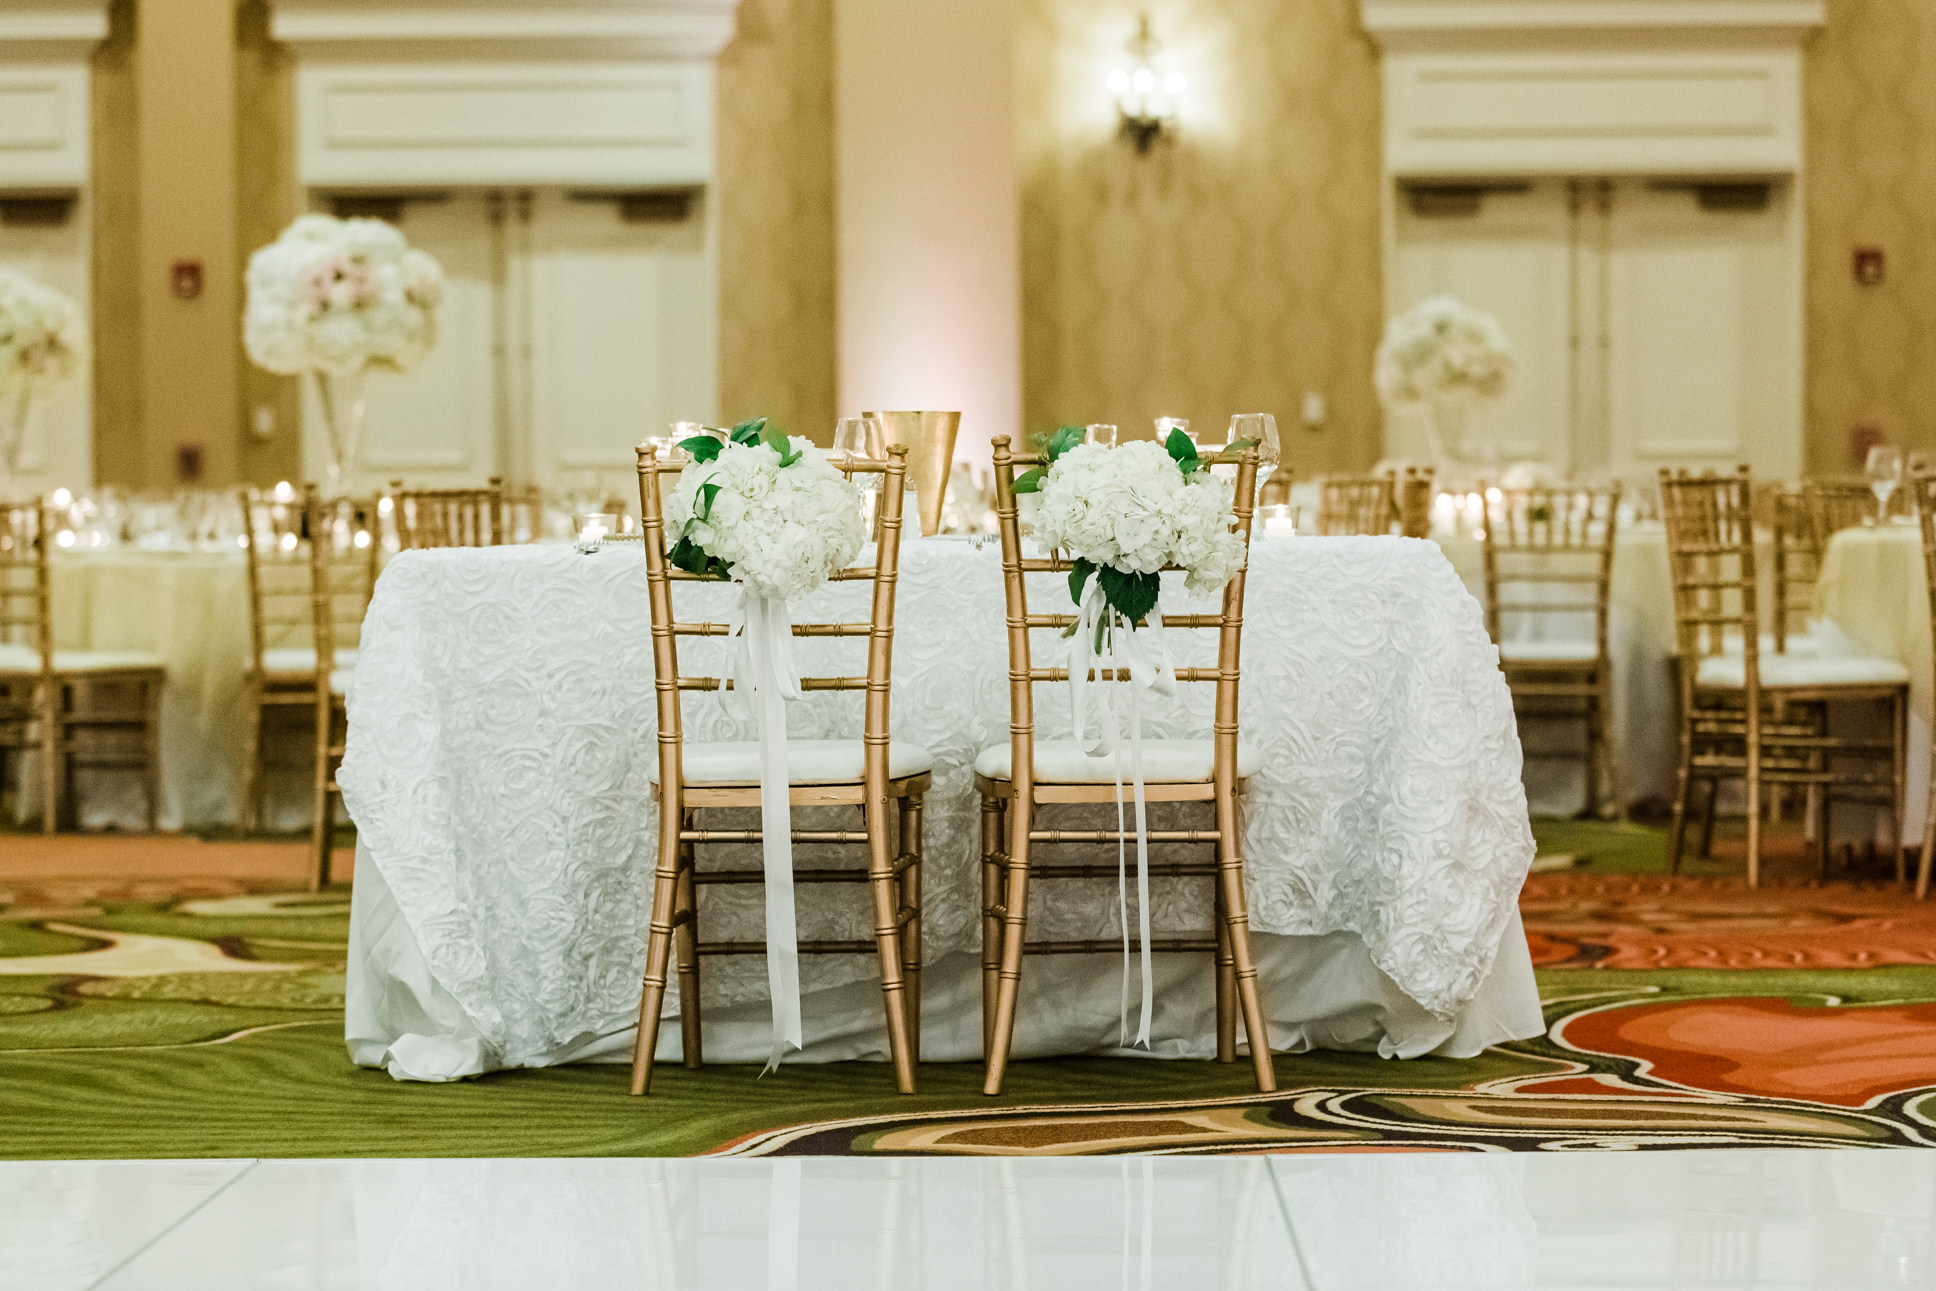 Elegant Ballroom Wedding Reception Decor, White Floral Table Linens on Sweetheart Table, Gold Chiavari Chairs, White Hydrangeas on Bride and Groom Chairs   Tropical Florida Waterfront Hotel Wedding Venue The Vinoy Renaissance St. Petersburg Resort and Golf Club